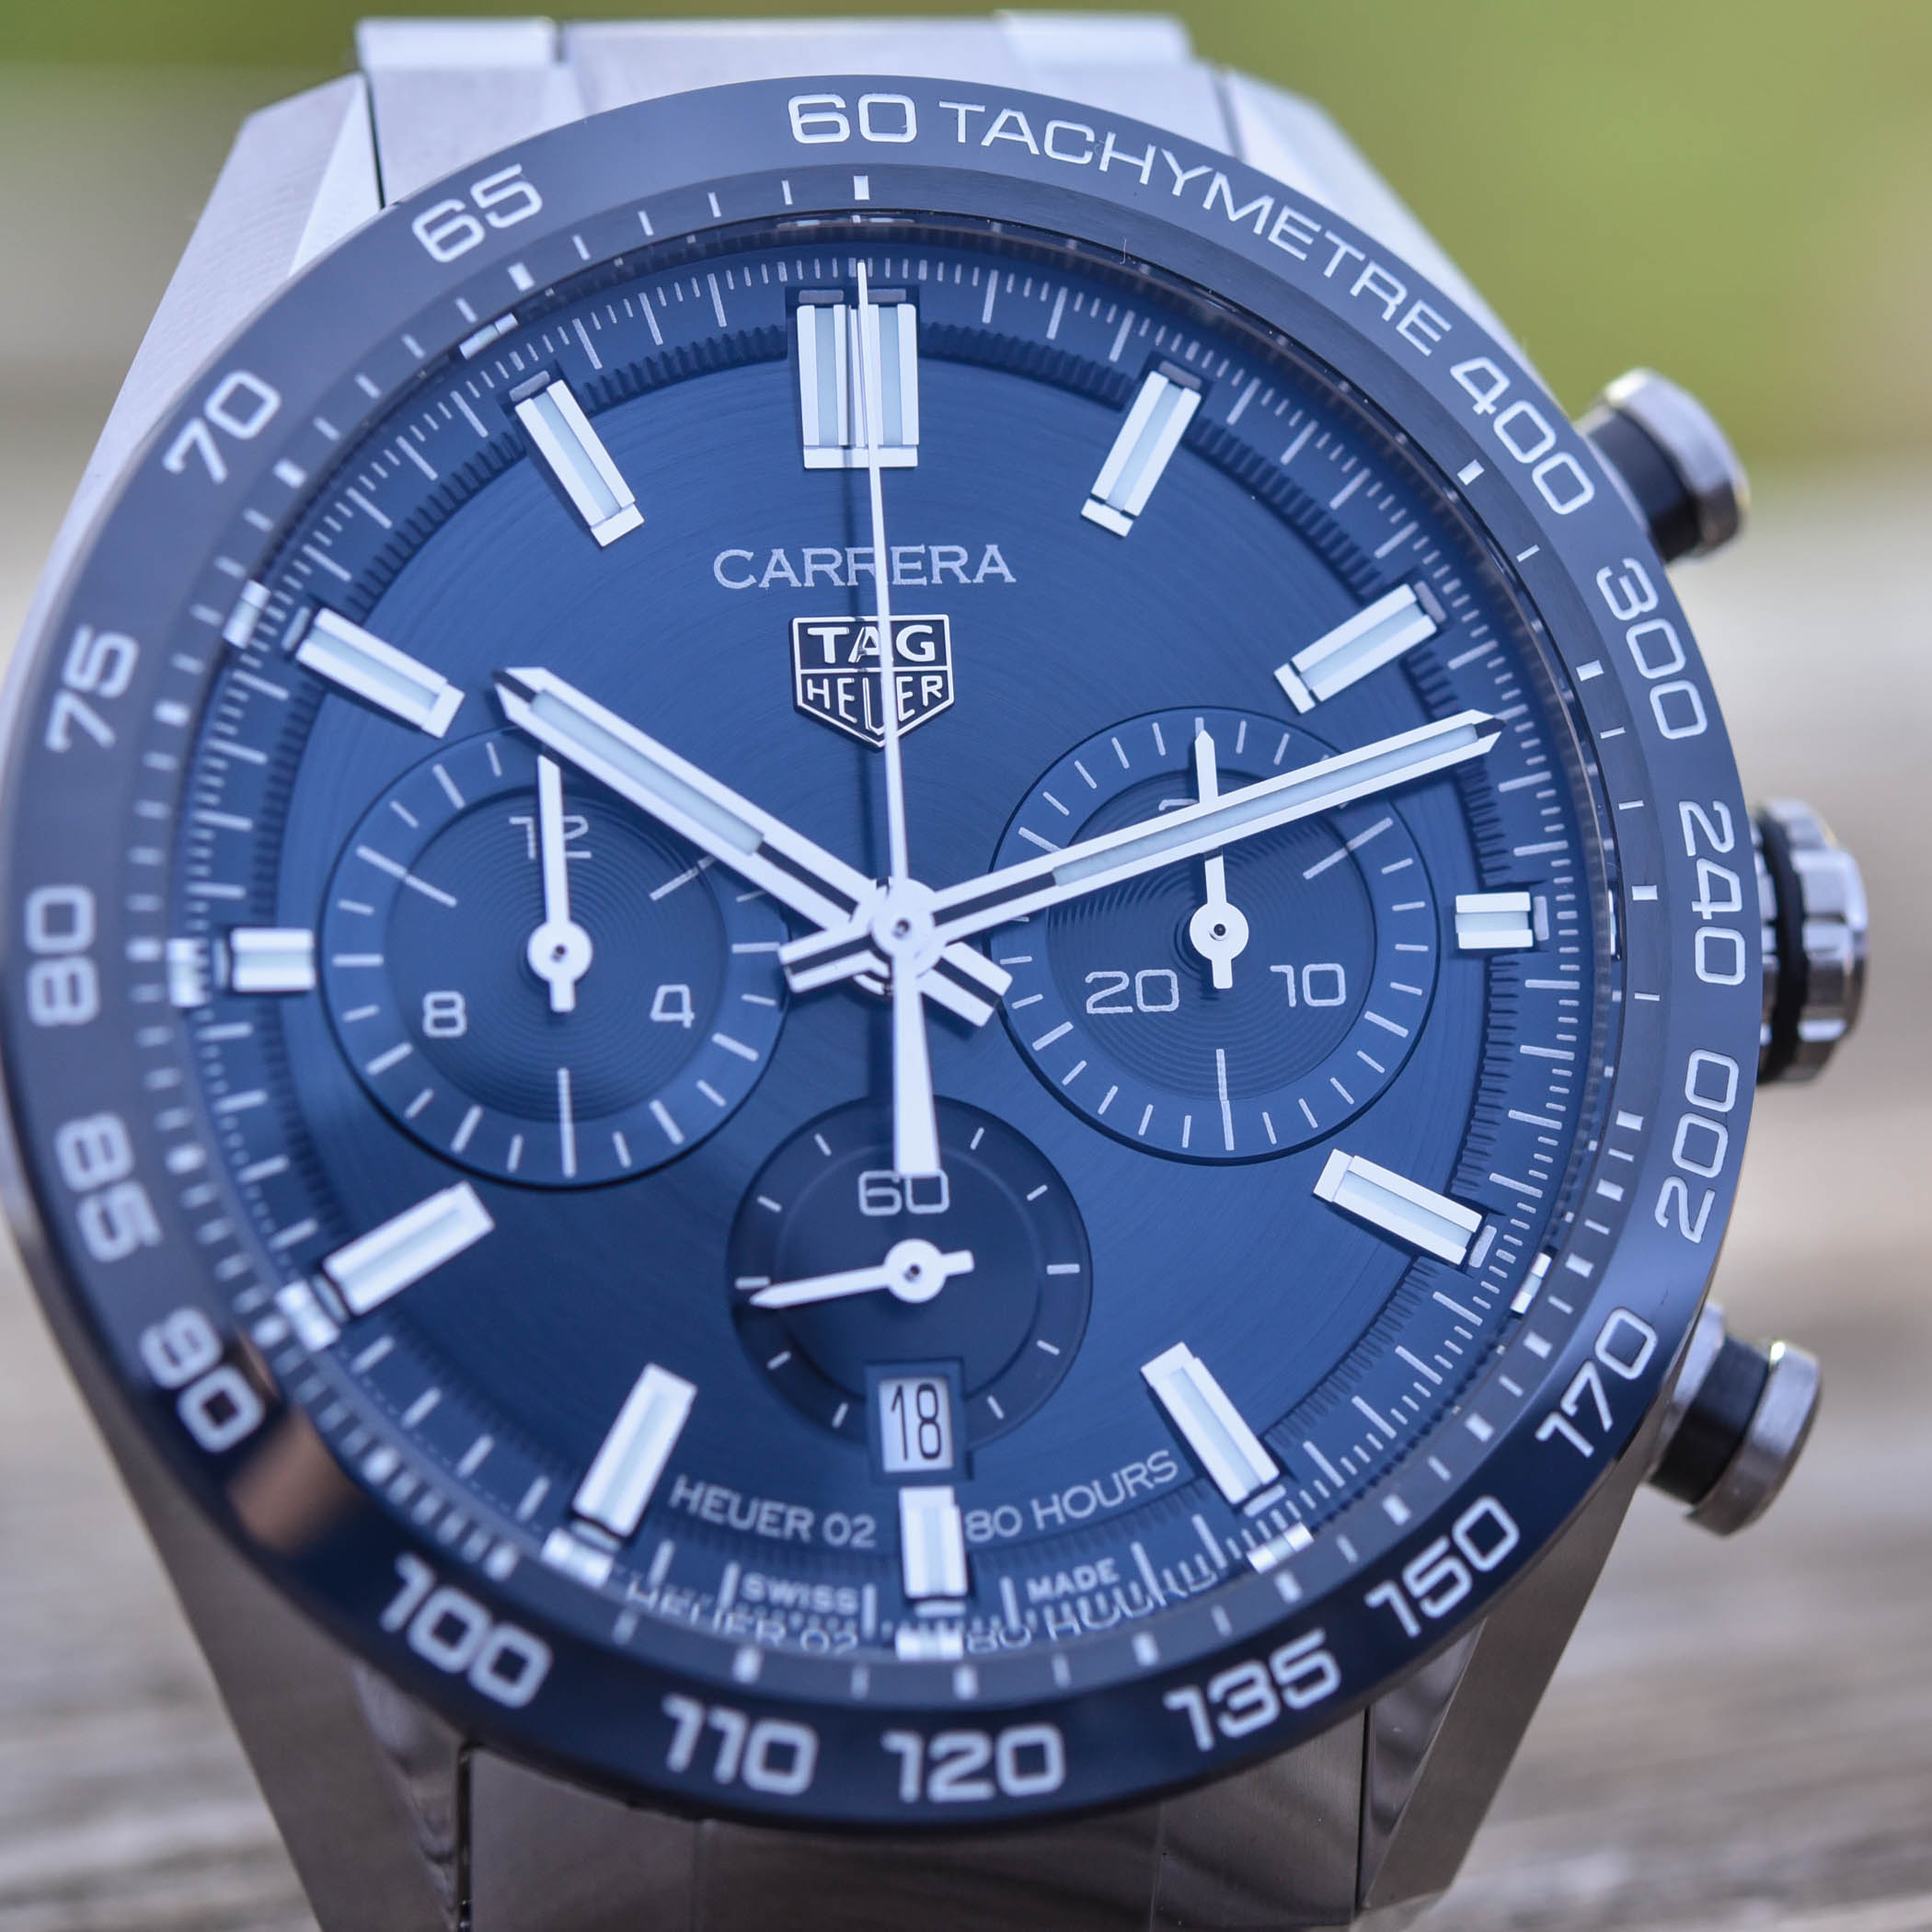 2020 TAG Heuer Carrera Sport Chronograph 44mm Collection - 5